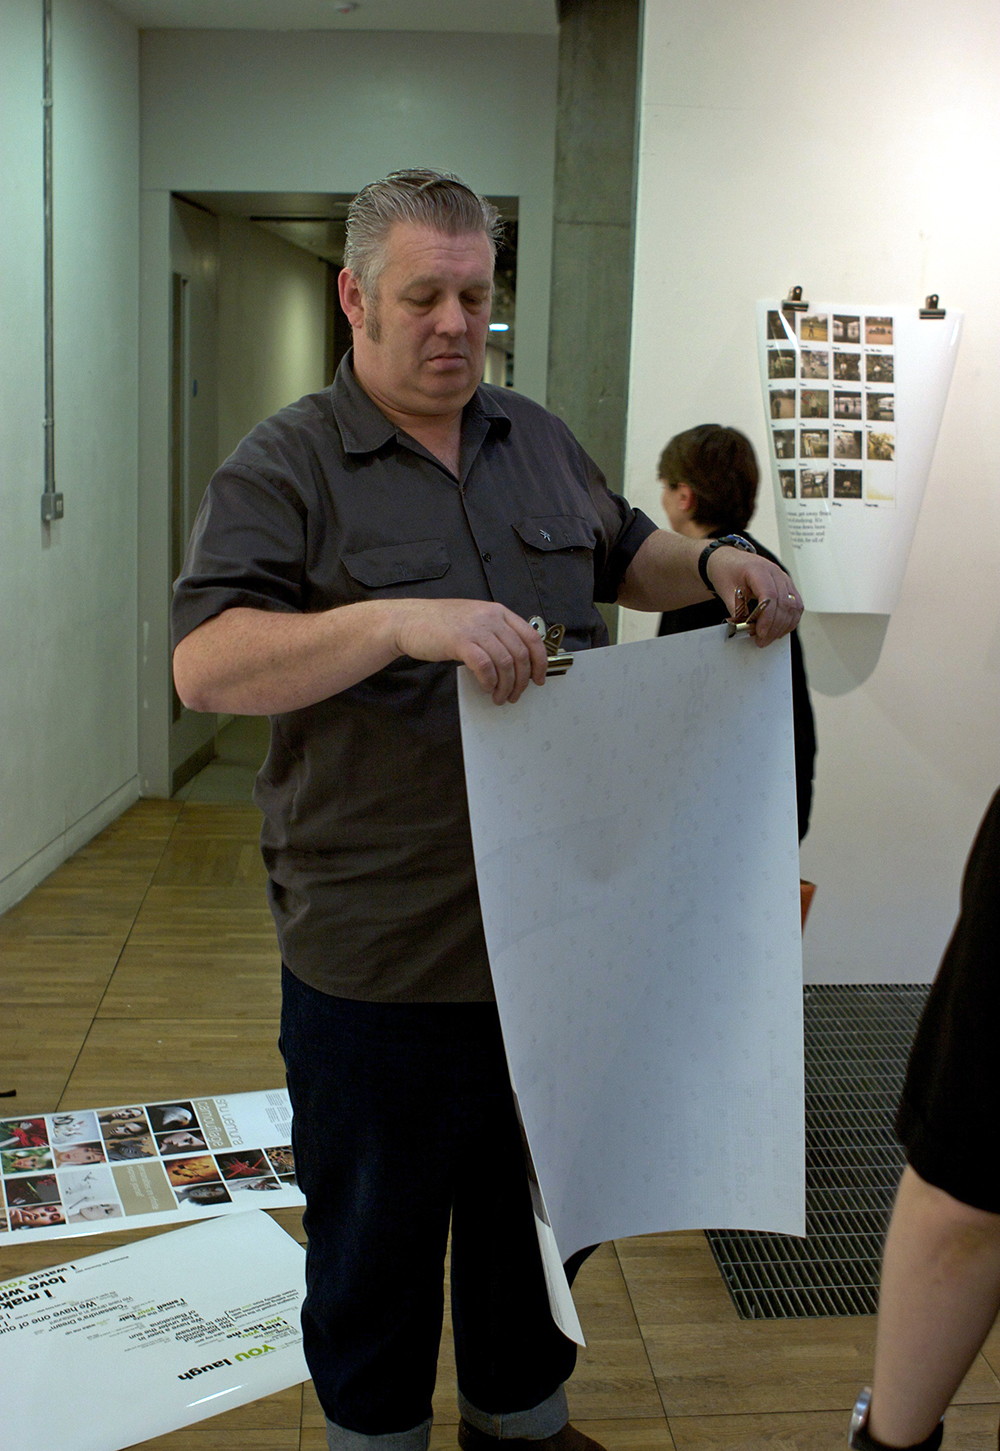 Ian helping put up work for a second year show in 2008 at LCC